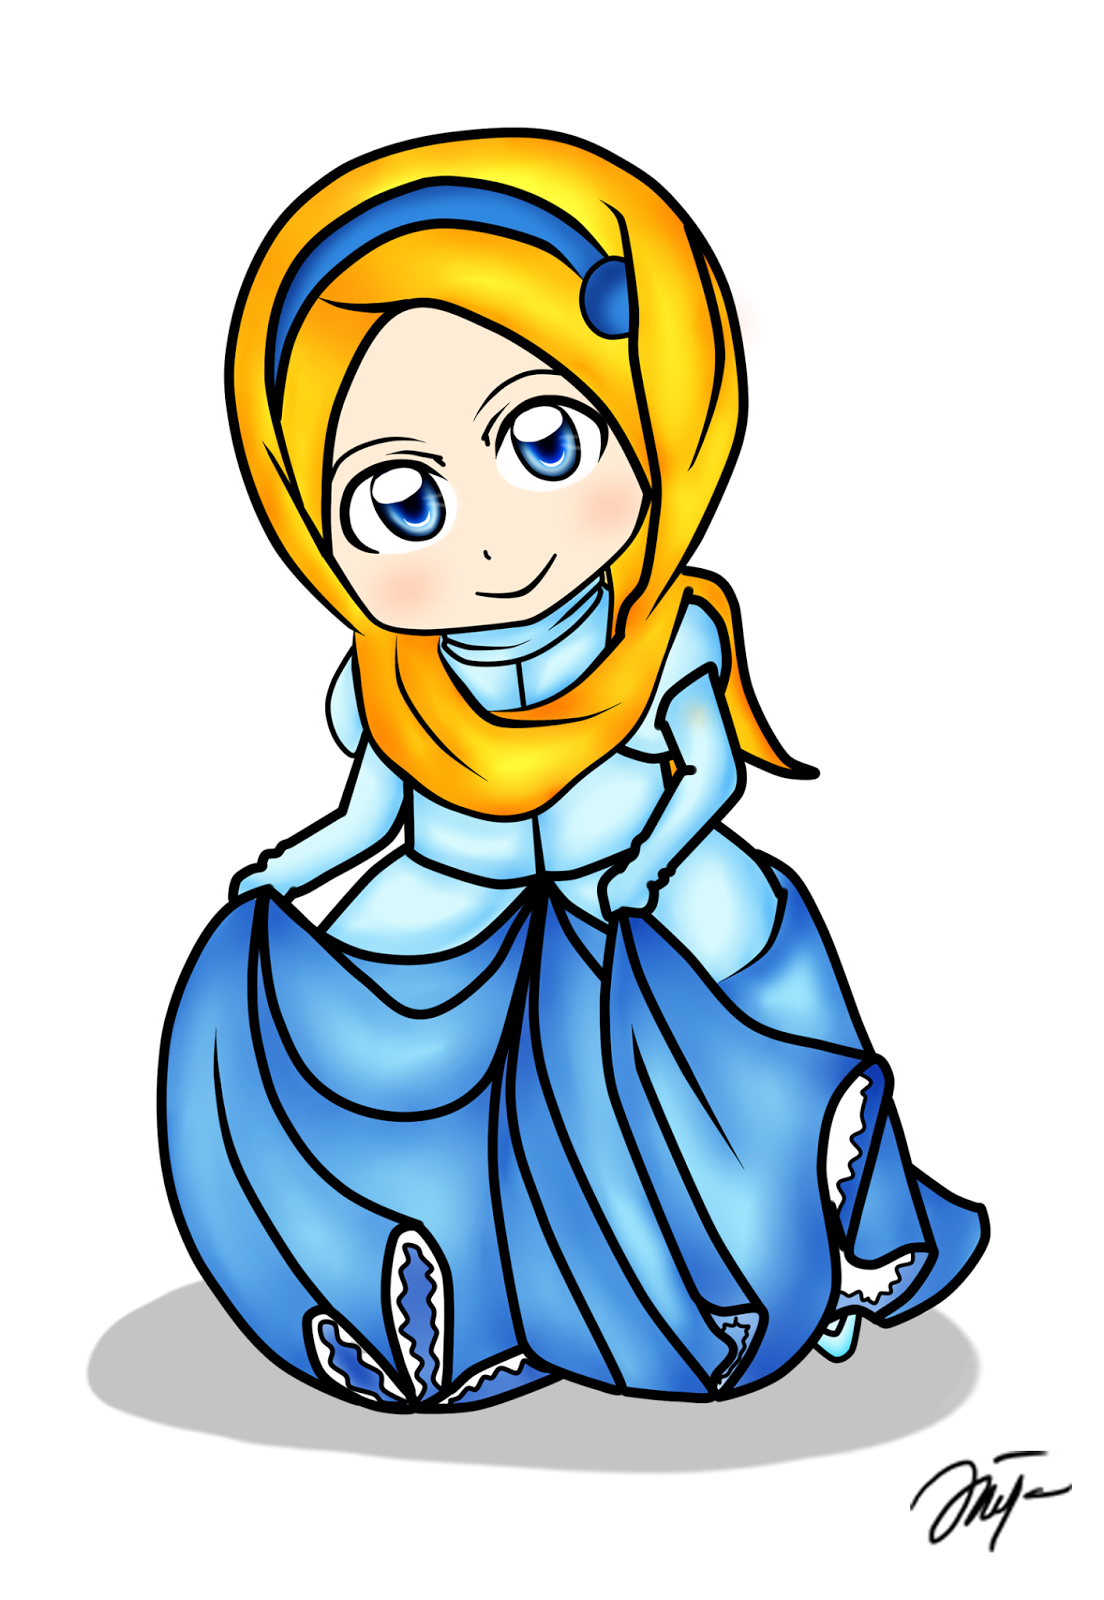 HIJAB Chibi Hijabs And Animation